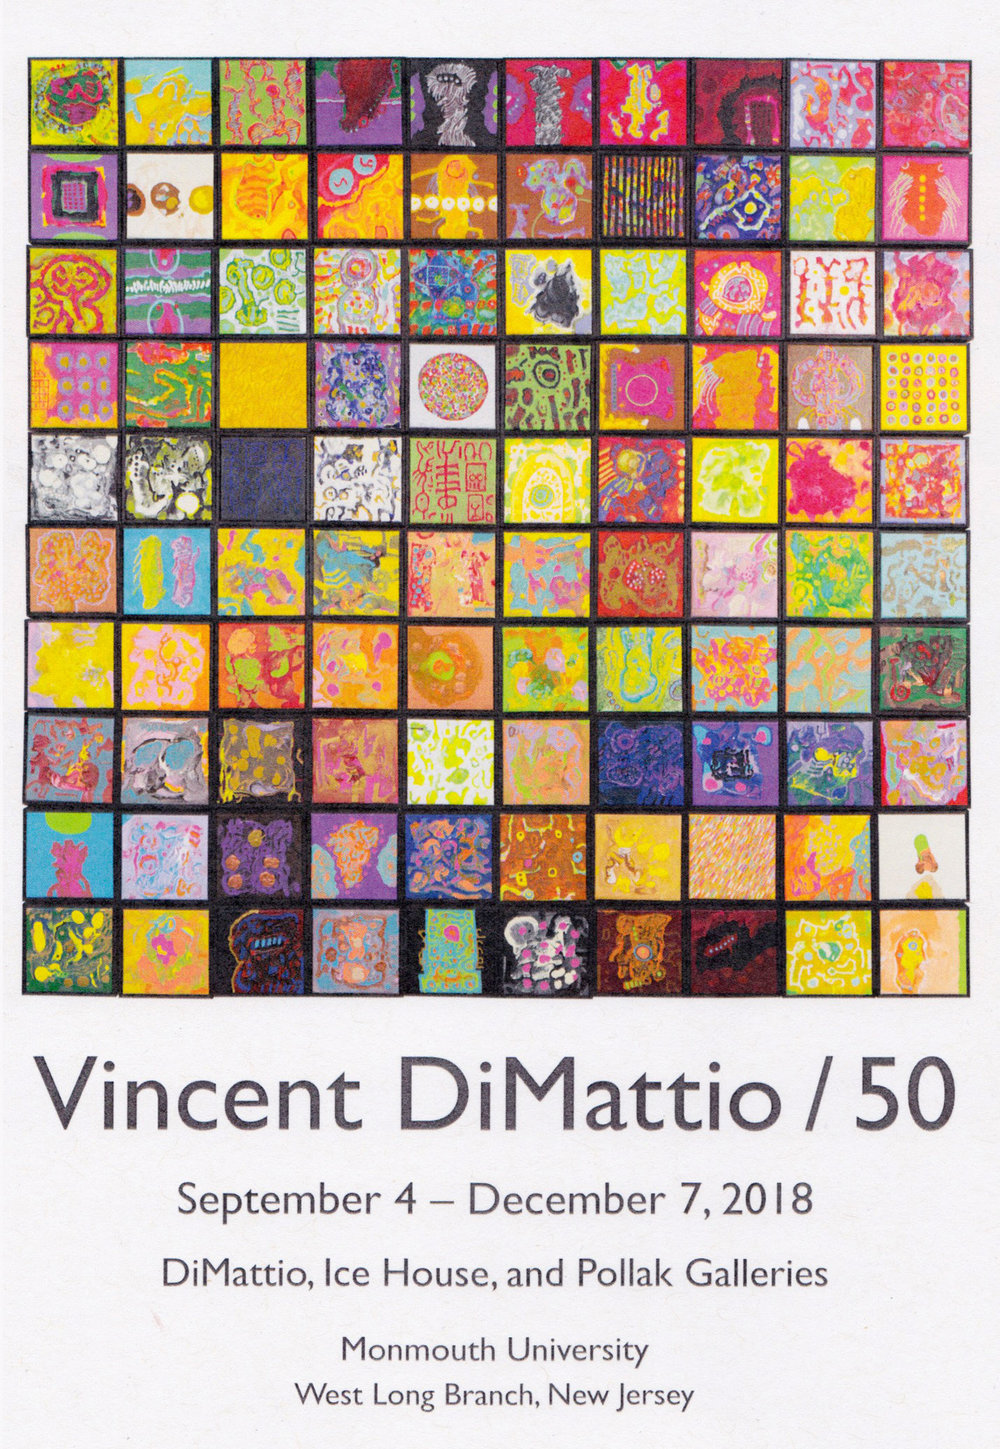 Vincent DiMattio/50 - September 4 – December 7, 2018